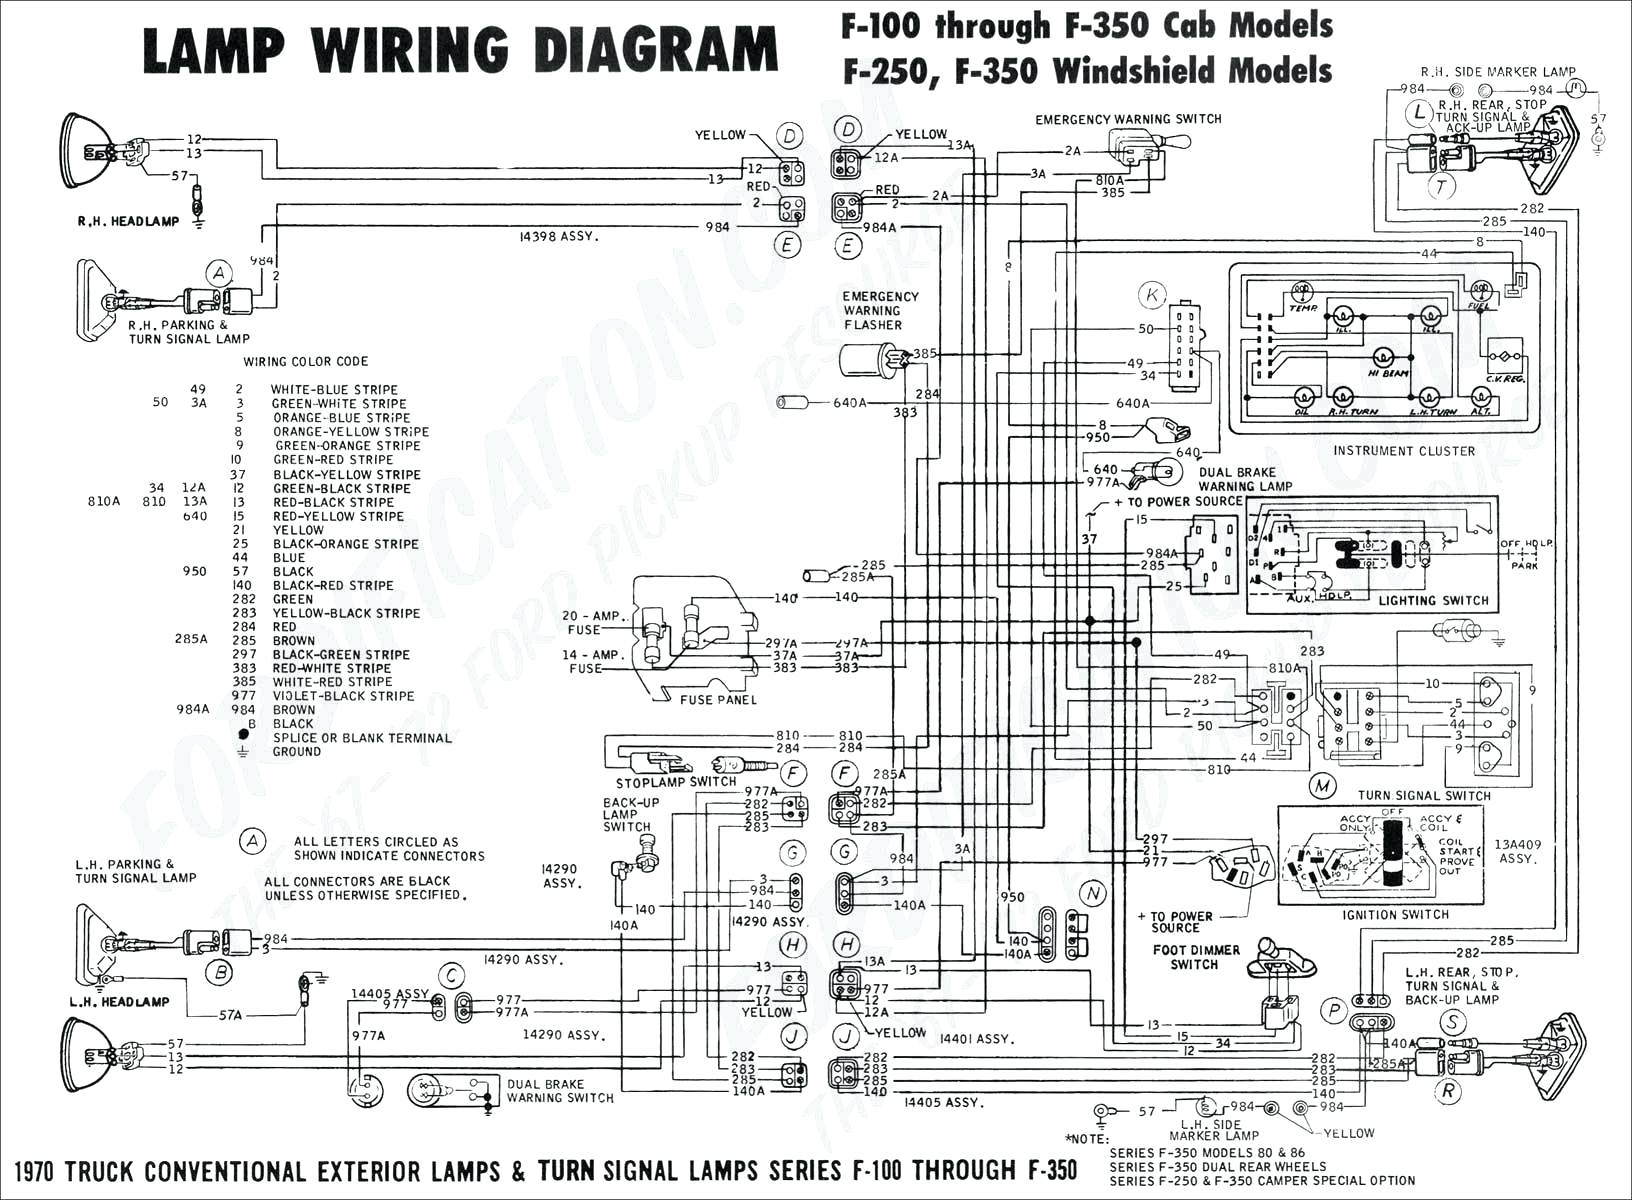 Snapper Mod Wlt145h38gbv Solenoid Wiring Diagram | Wiring ... on